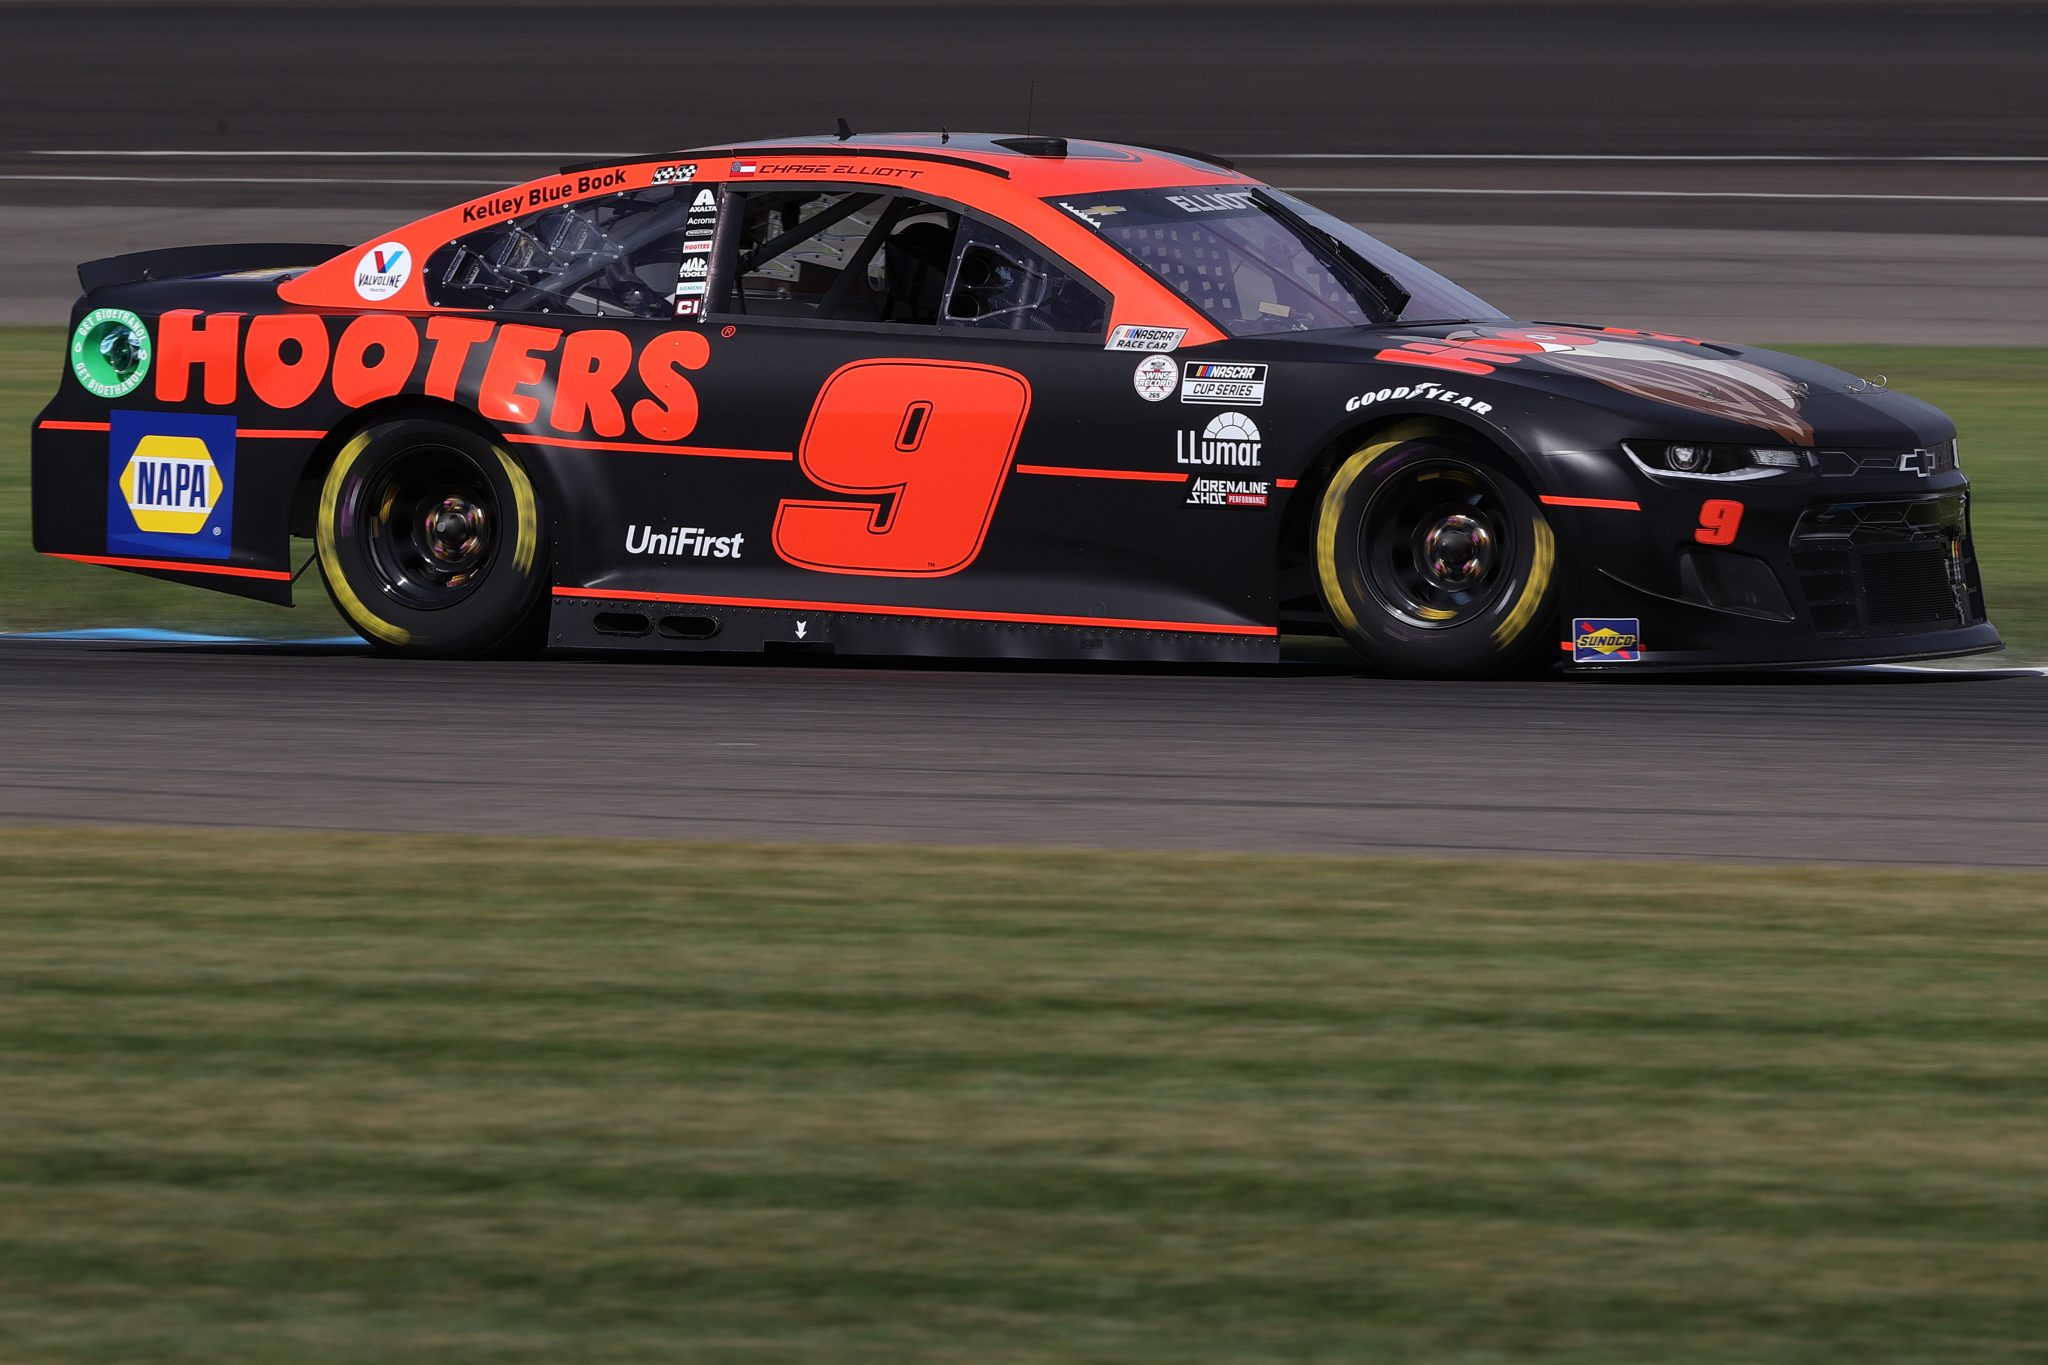 INDIANAPOLIS, INDIANA - AUGUST 14: Chase Elliott, driver of the #9 Hooters Chevrolet, drives during practice for the NASCAR Cup Series Verizon 200 at the Brickyard at Indianapolis Motor Speedway on August 14, 2021 in Indianapolis, Indiana. (Photo by Stacy Revere/Getty Images)   Getty Images